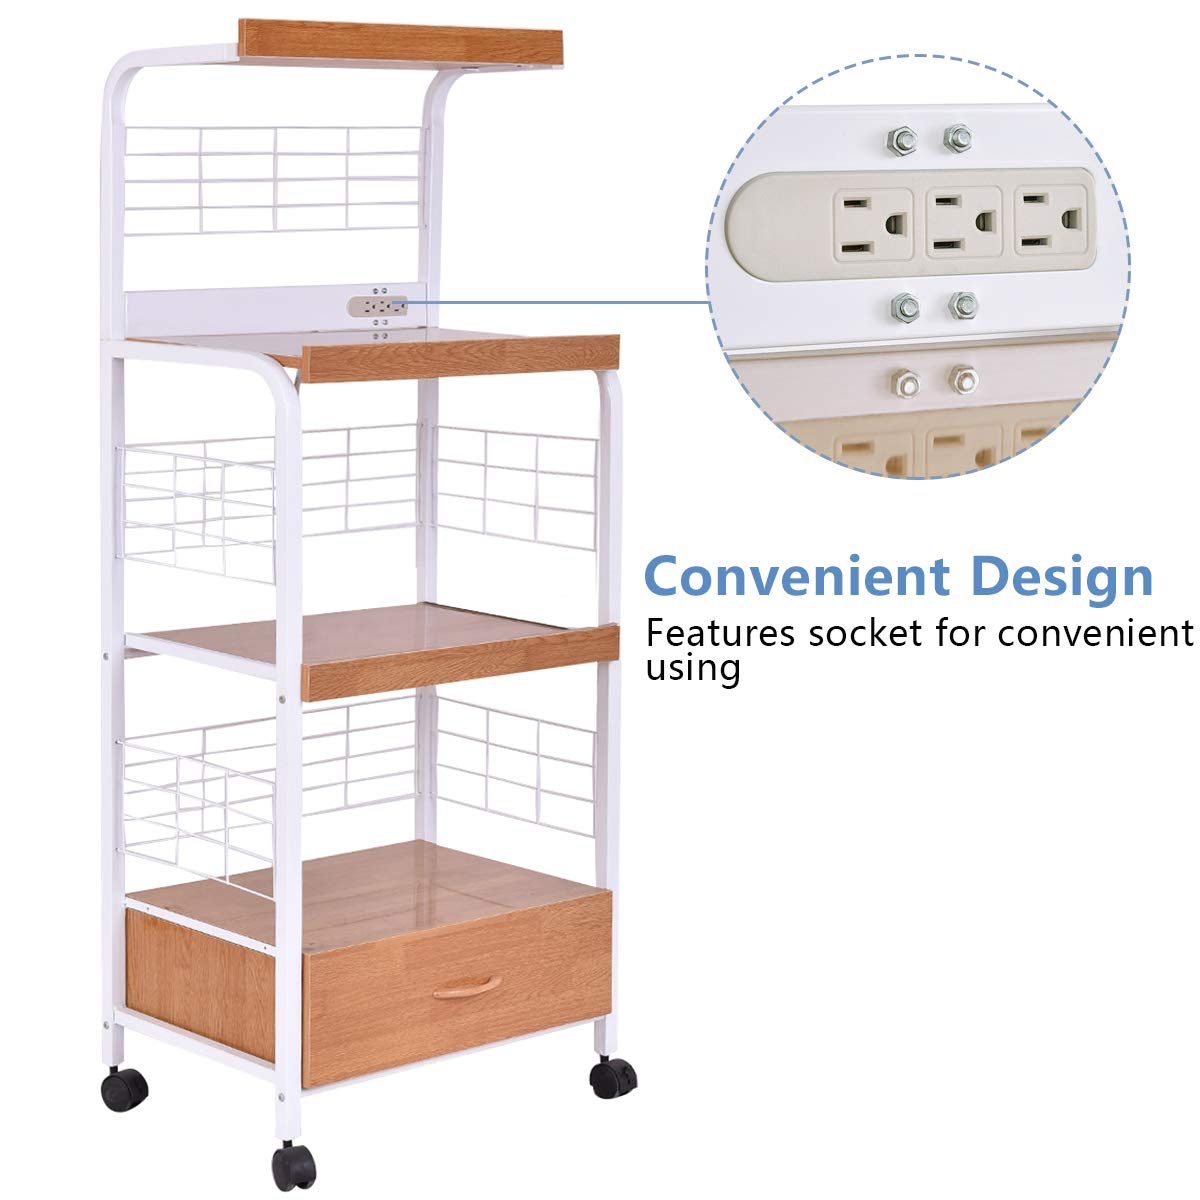 Giantex Microwave Cart Kitchen Baker's Rack Microwave Oven Stand Rolling Kitchen Storage Cart Utensils Organizer w/Electric Outlet and Drawer by Giantex (Image #5)